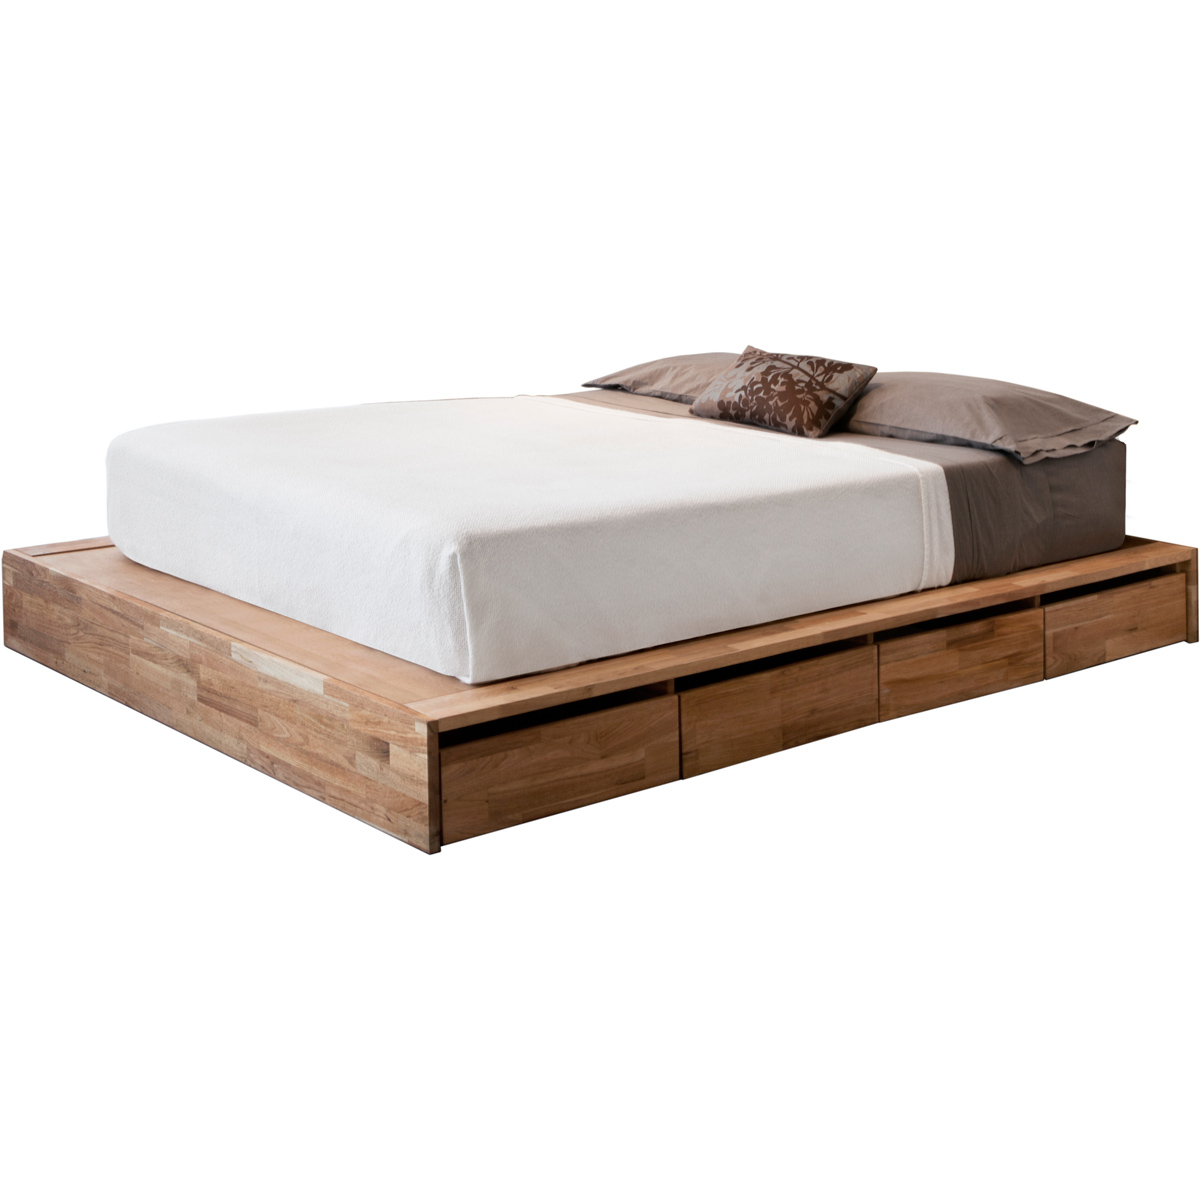 Representation Of The Comfortable And Beautiful Designs Ikea Bed Frame With Storage That Will Stun You